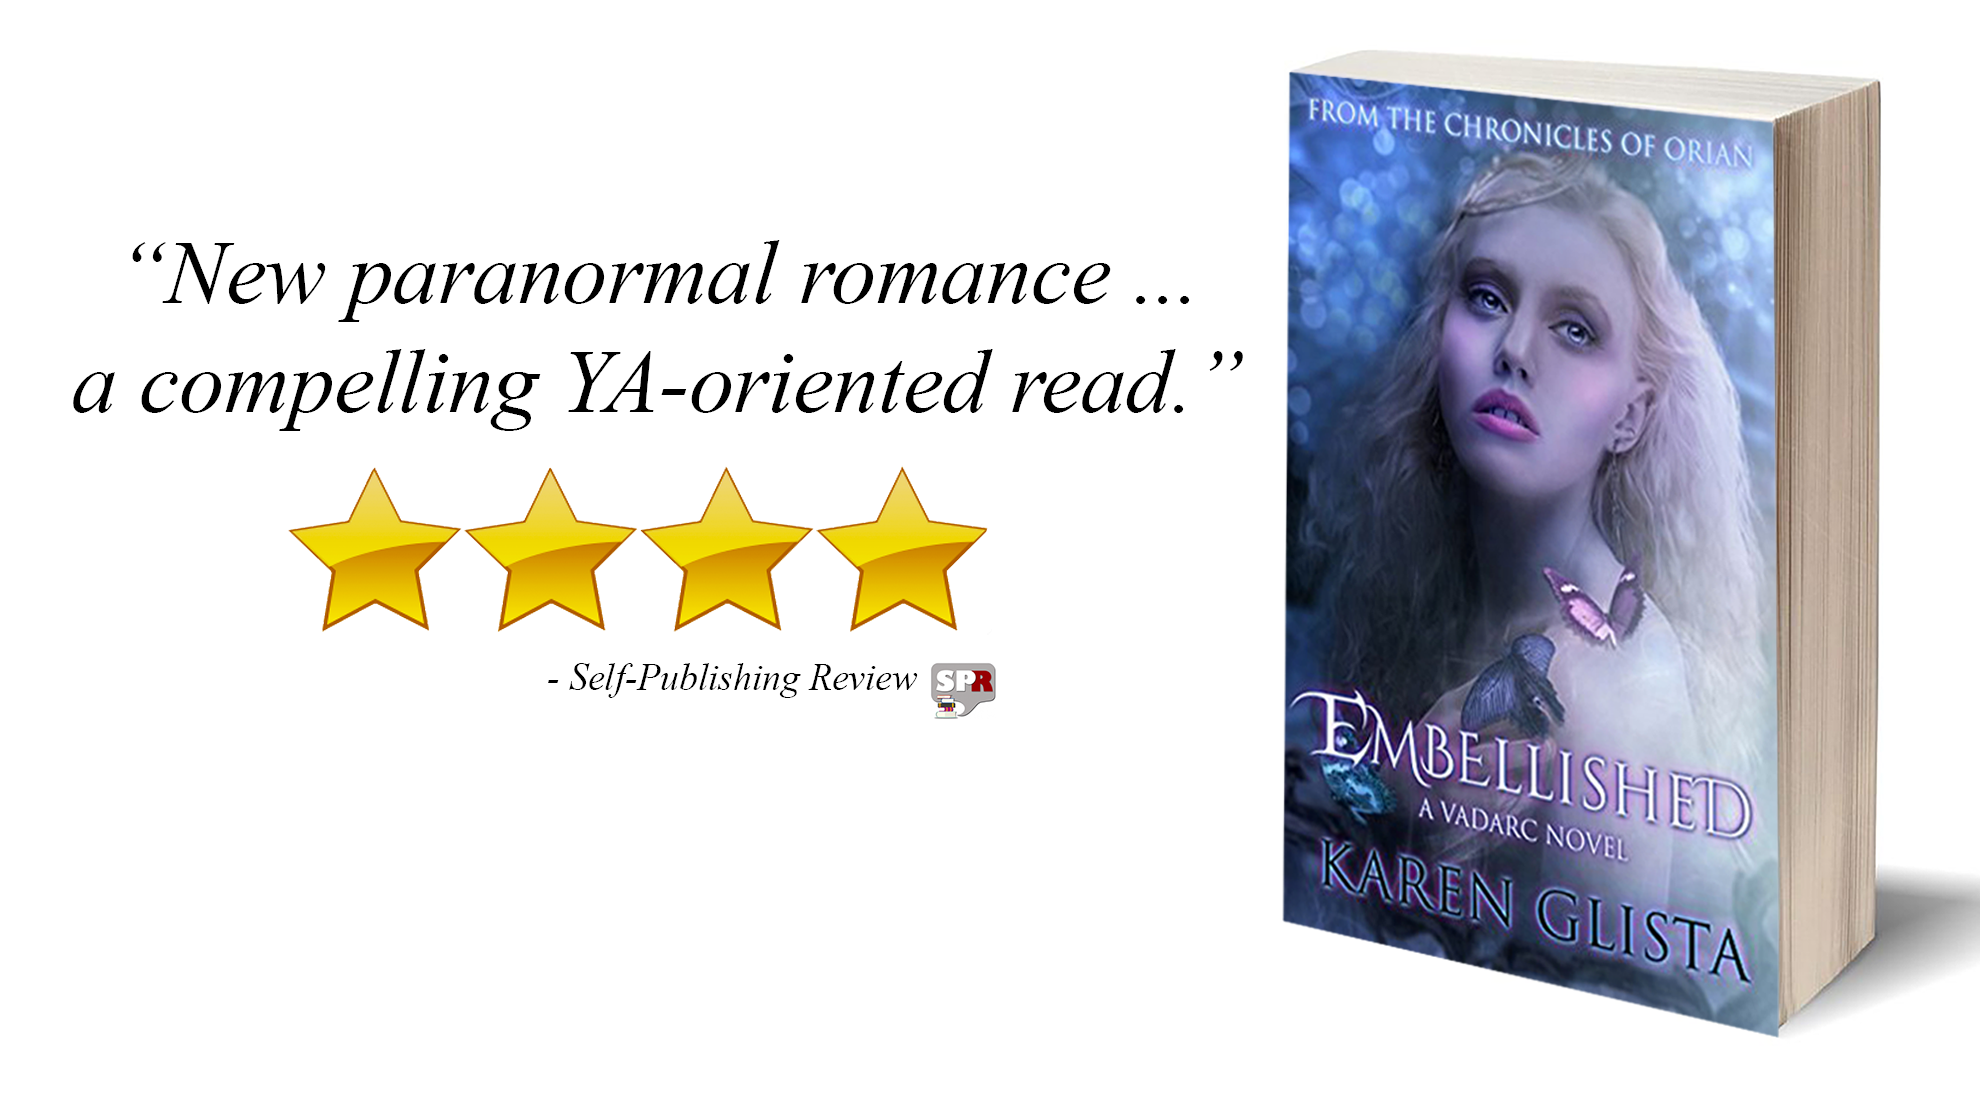 Review: Embellished: A Vadarc Novel (Chronicles of Orian Book 1) by Karen Glista